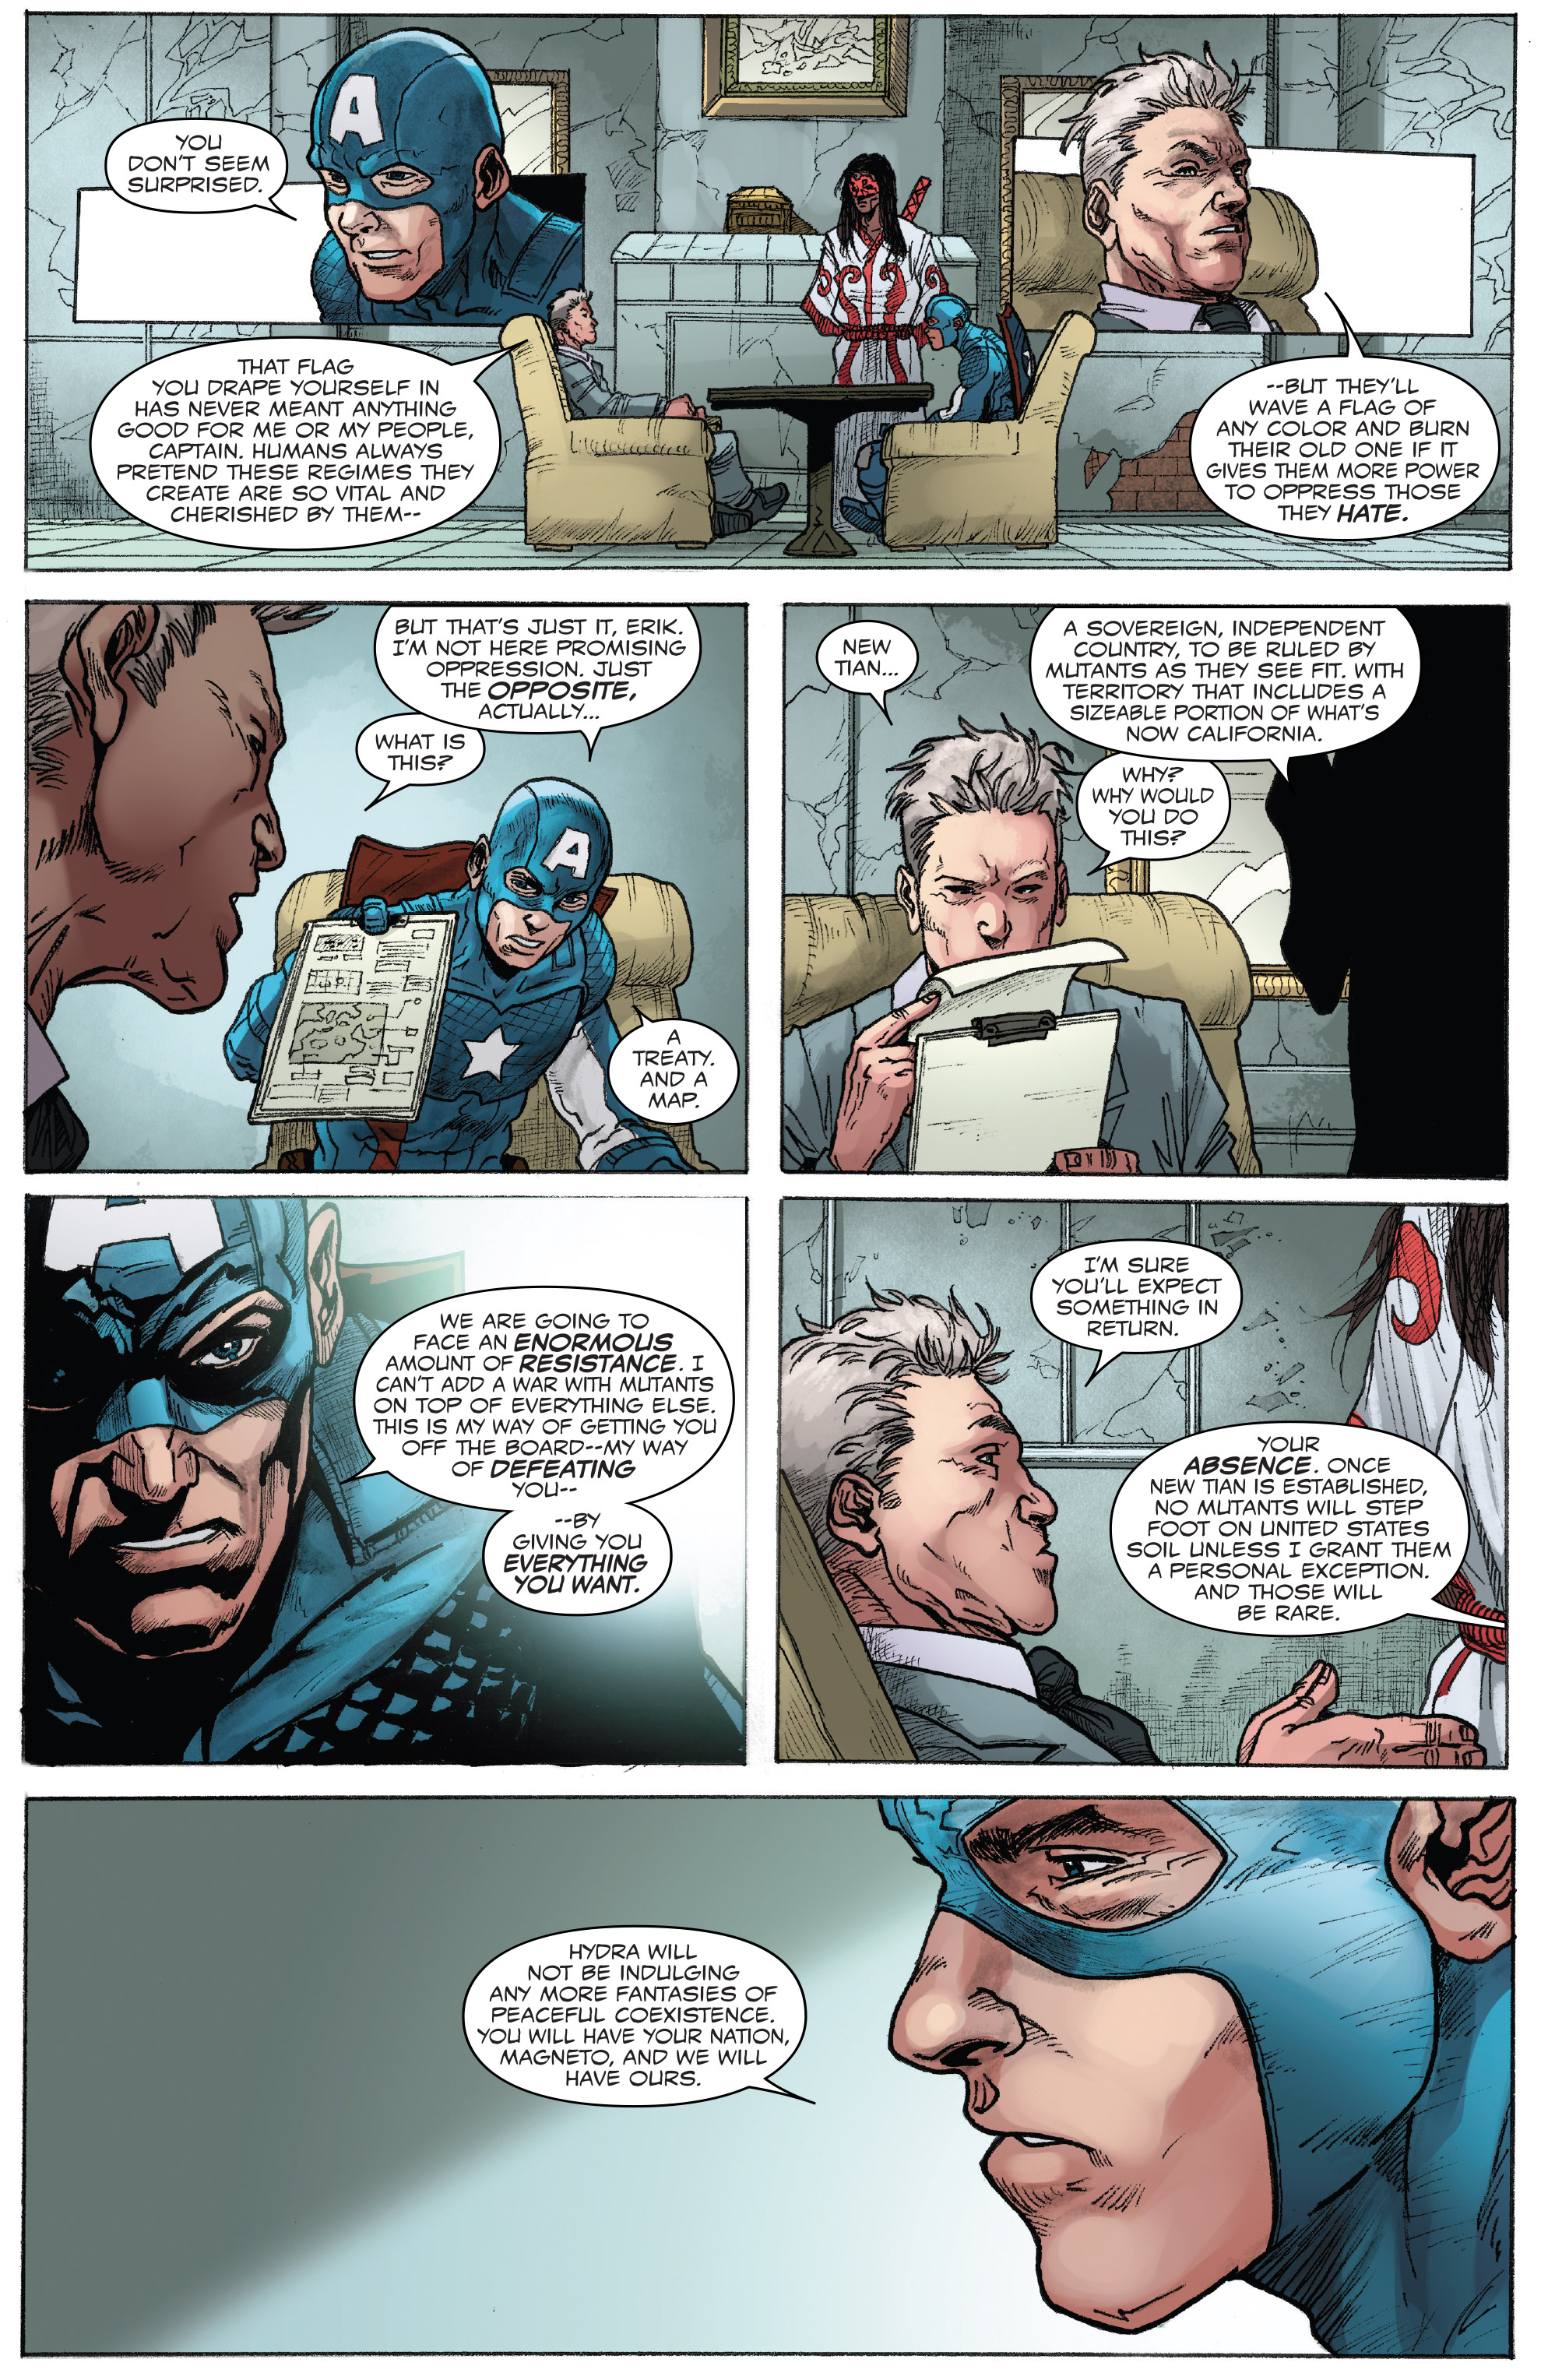 Read online Captain America: Steve Rogers comic -  Issue #17 - 14